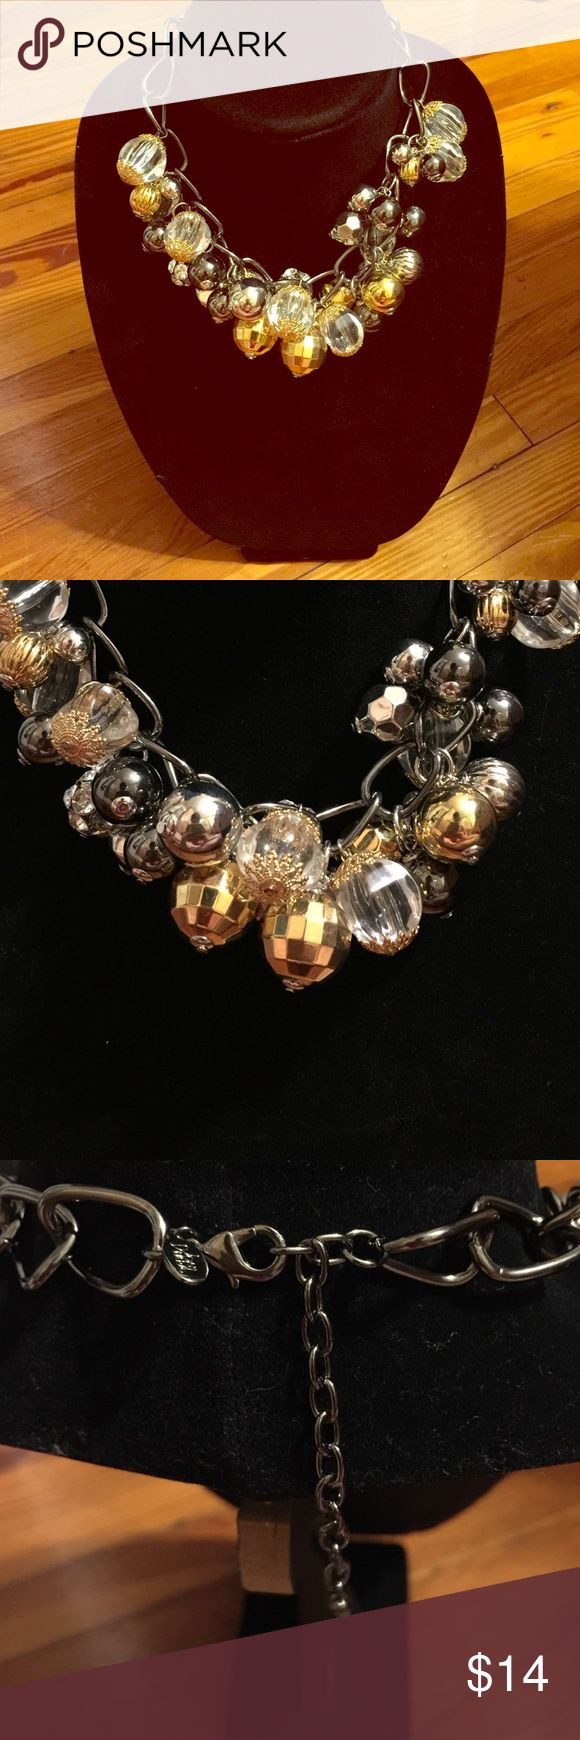 Gold & Silver Statement Necklace Great condition.. Hardly any wear! Joan Rivers Jewelry Necklaces